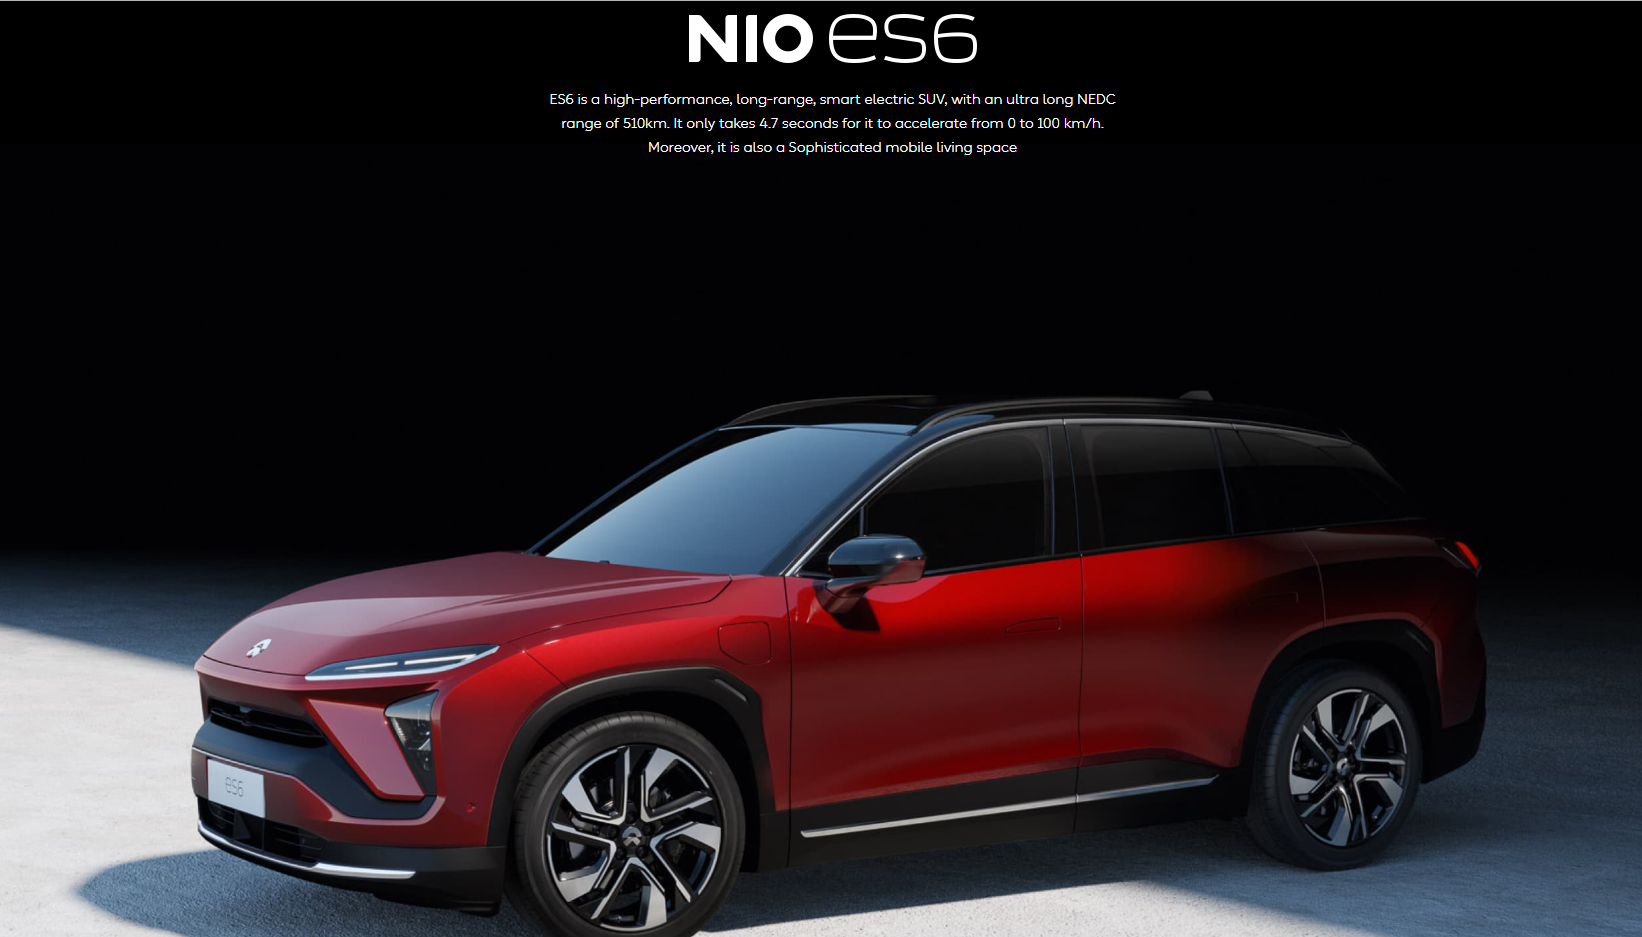 Briefing: Chinese Tesla rival NIO launches second electric SUV